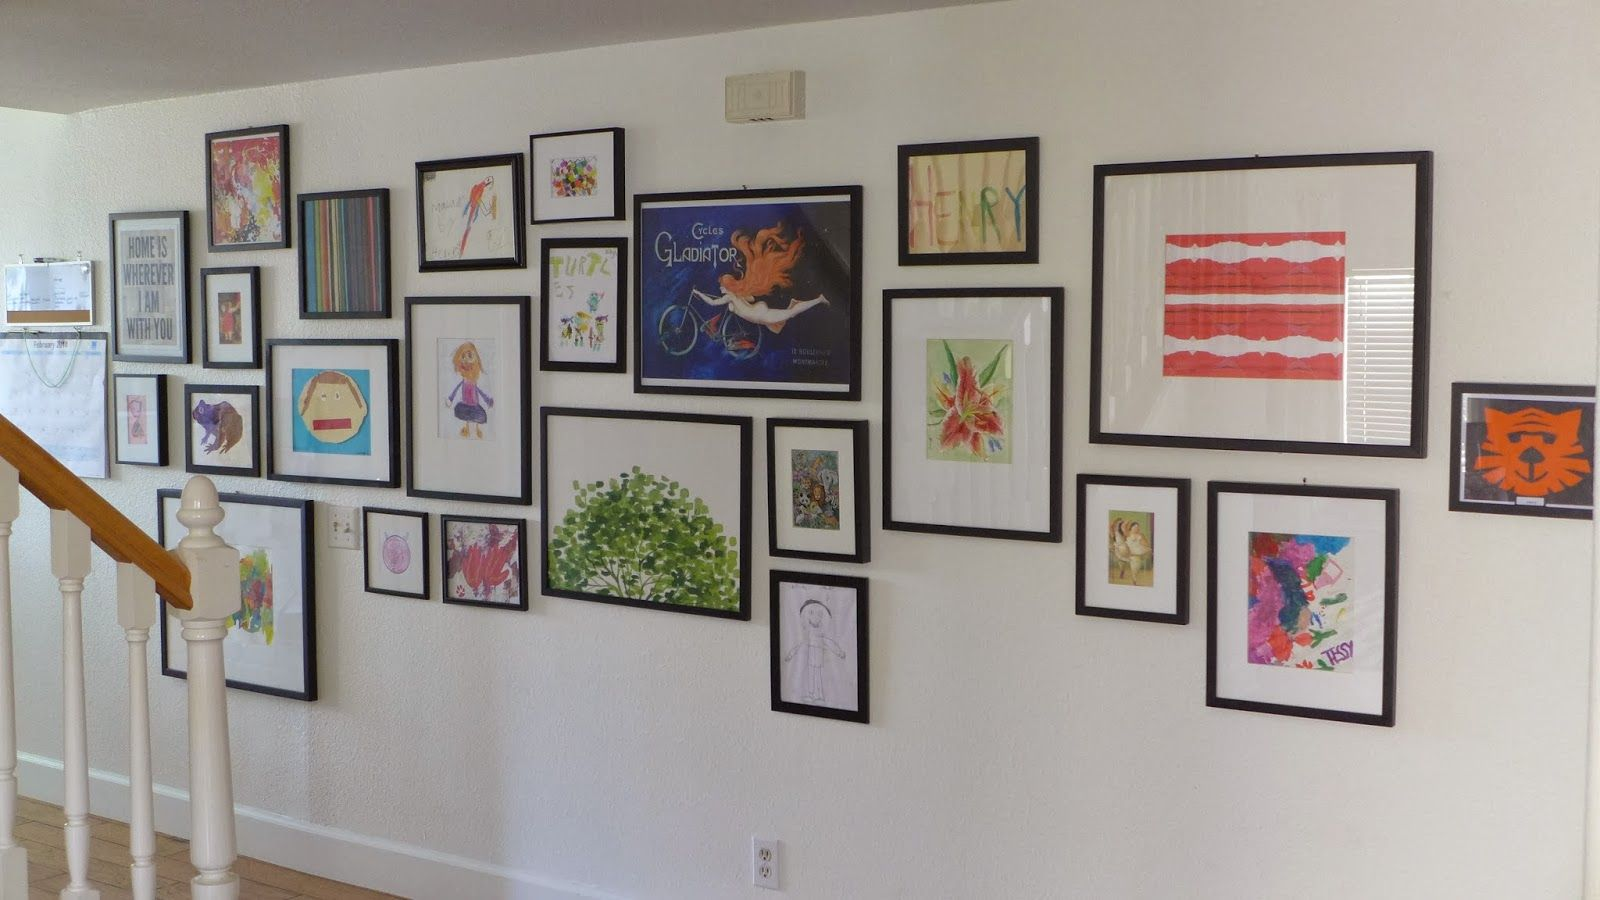 anxiety rearranging: the gallery wall in the hallway- Gallery wall with a midline